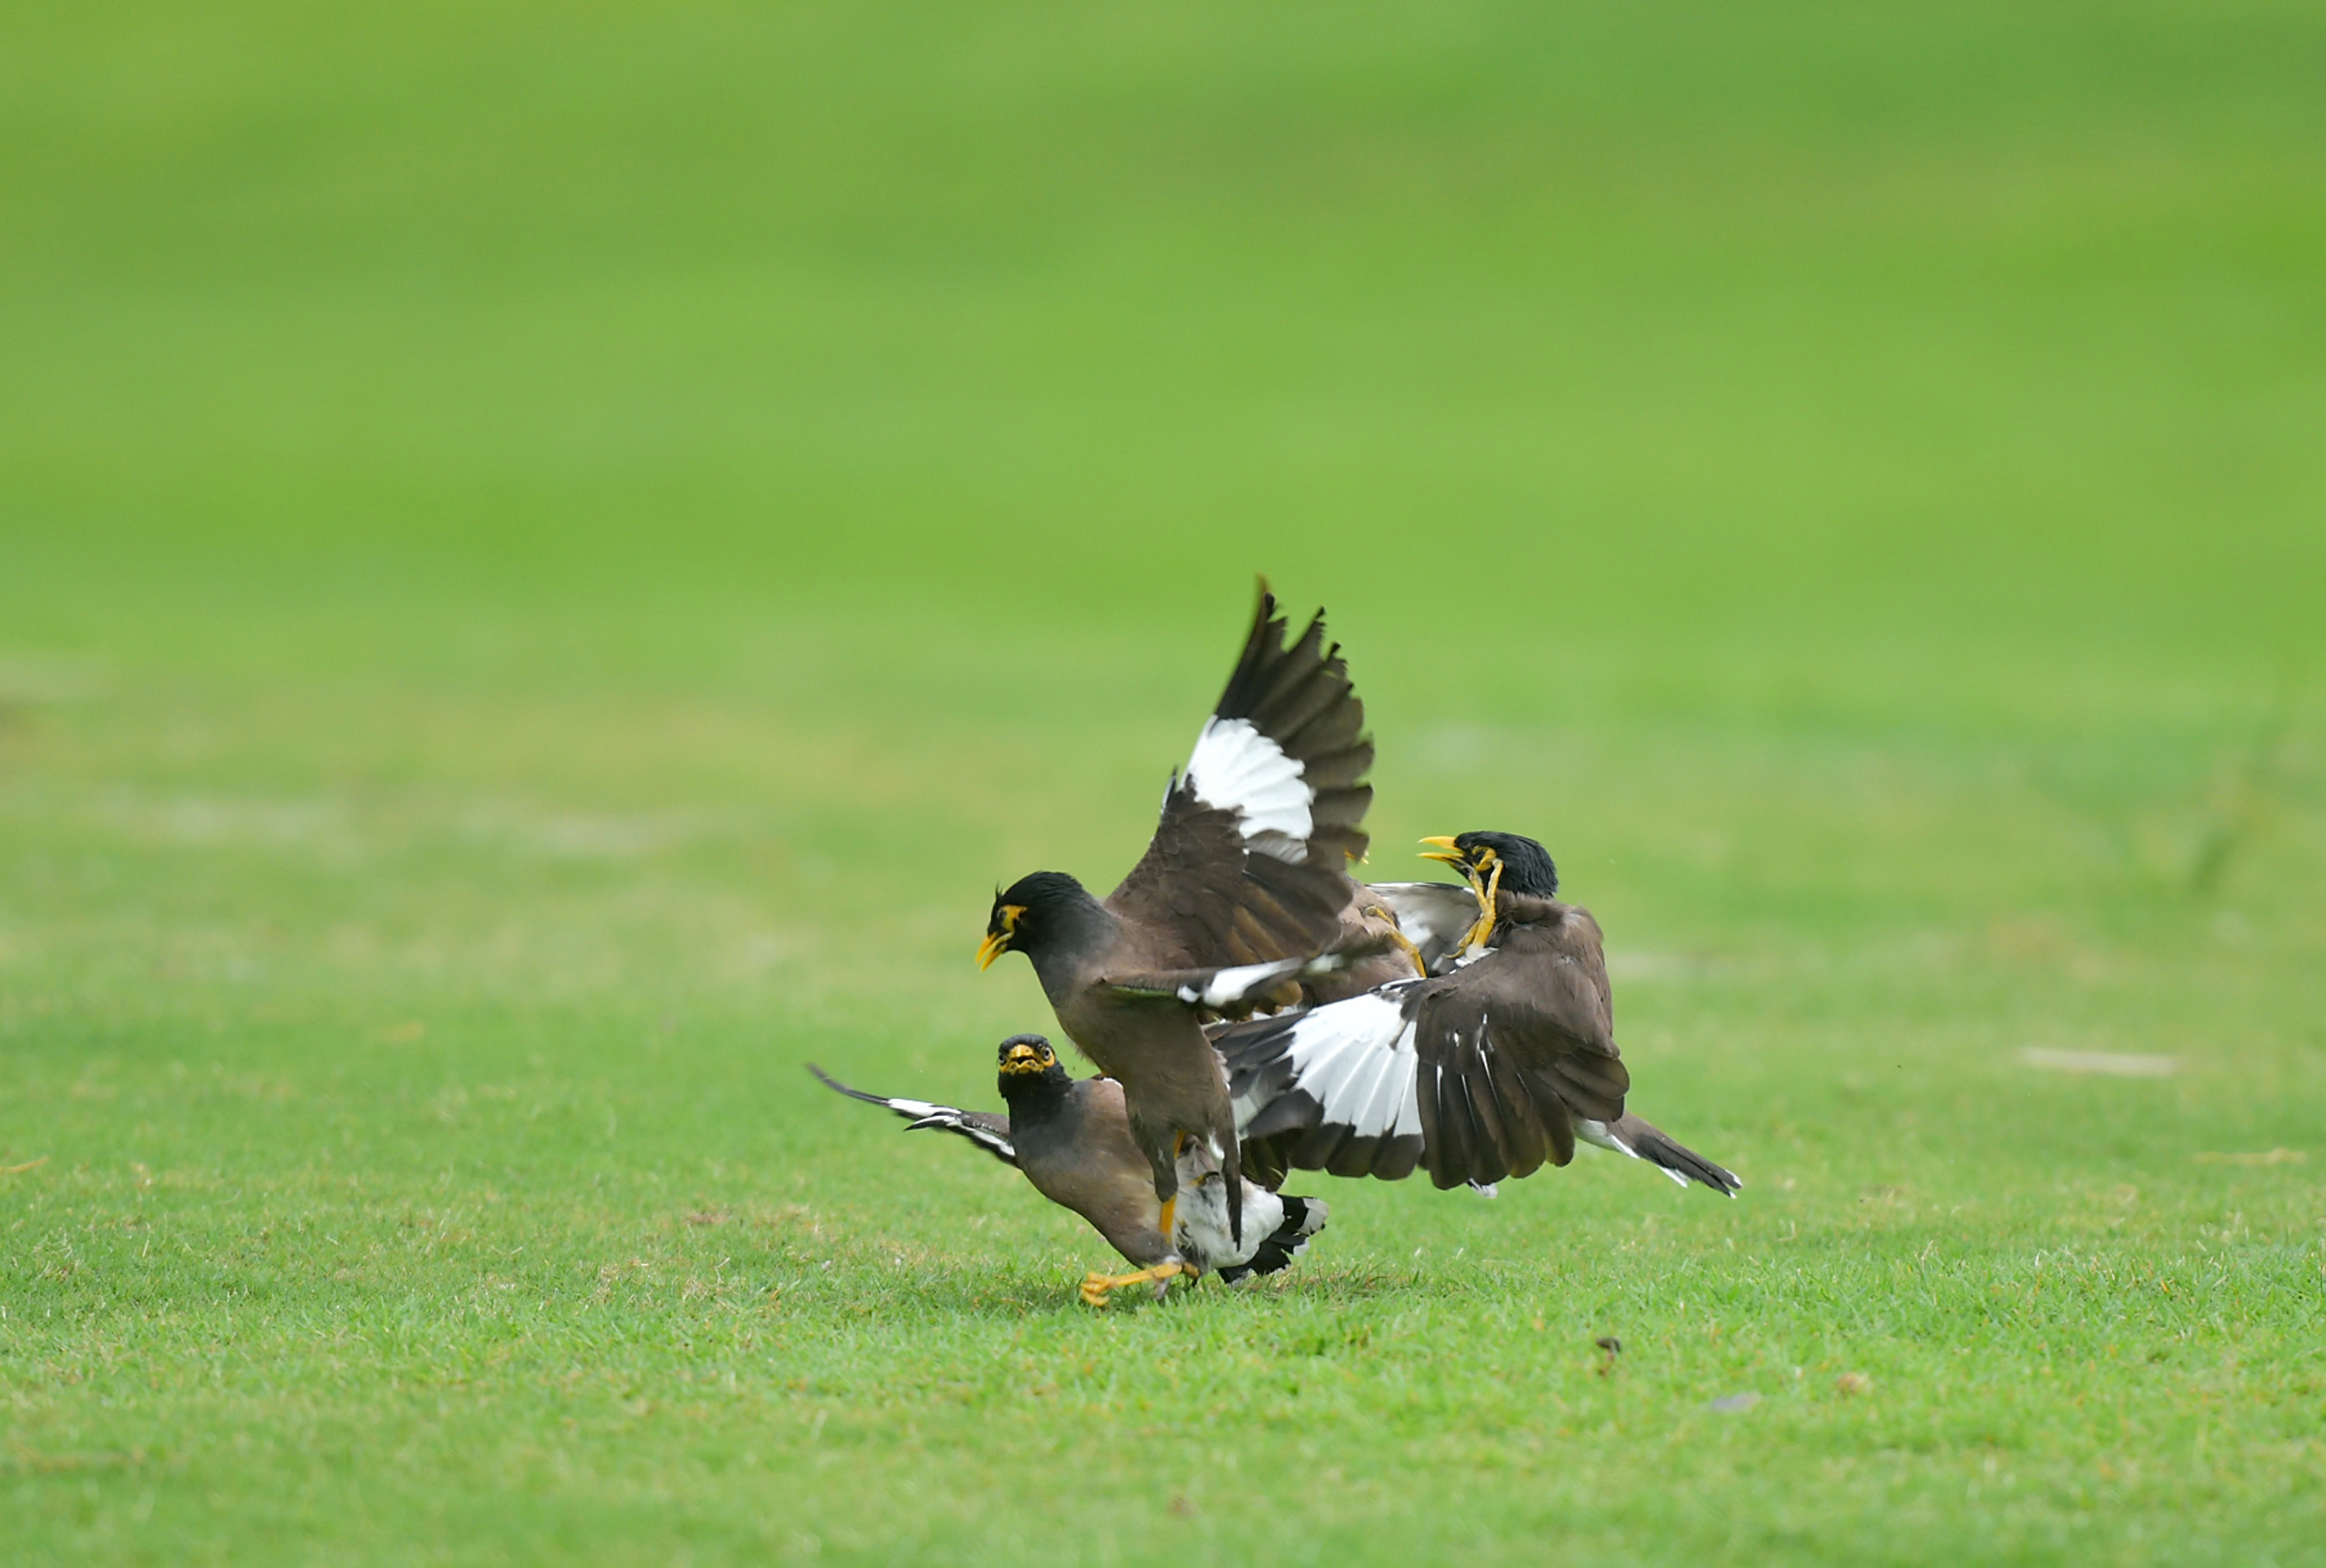 Indonesian birds spotted 'fighting' mates on golf course